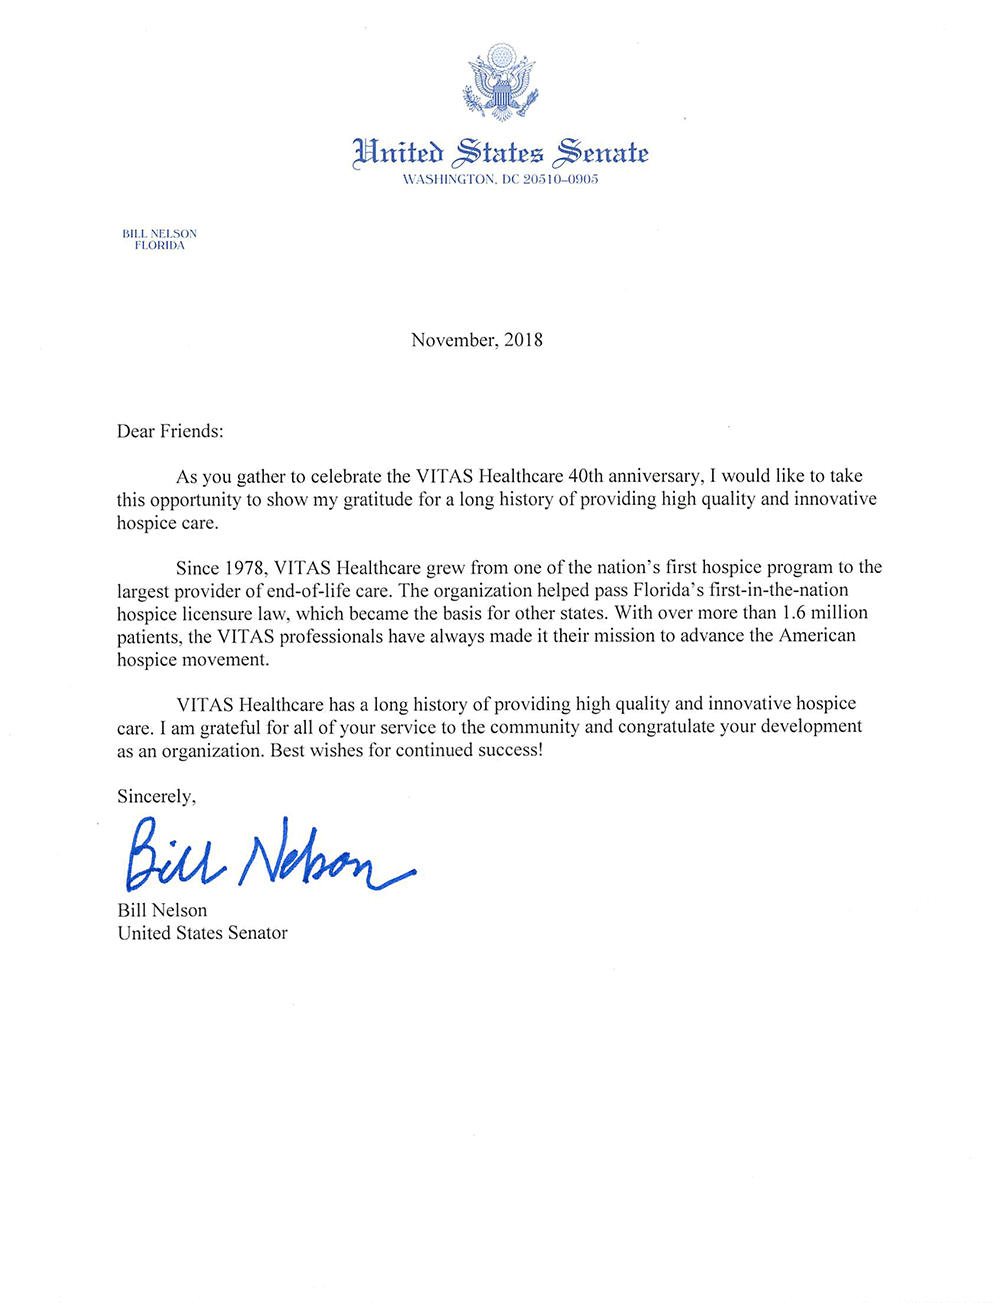 Letter to VITAS from US Senator Bill Nelson